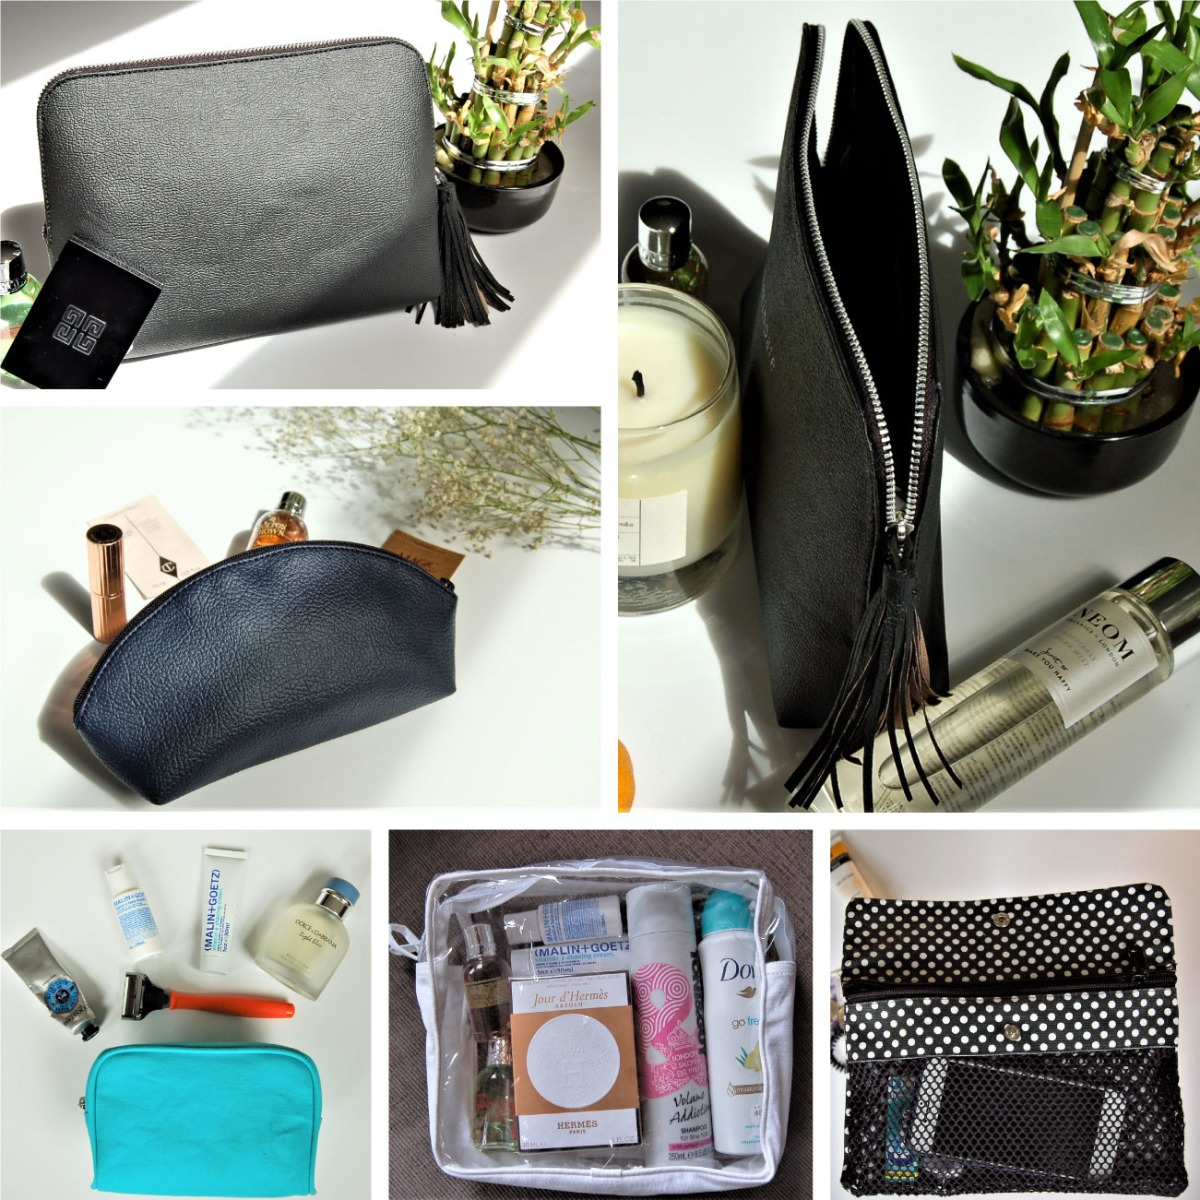 Any Shape, Any Size, Any Color makeup bags